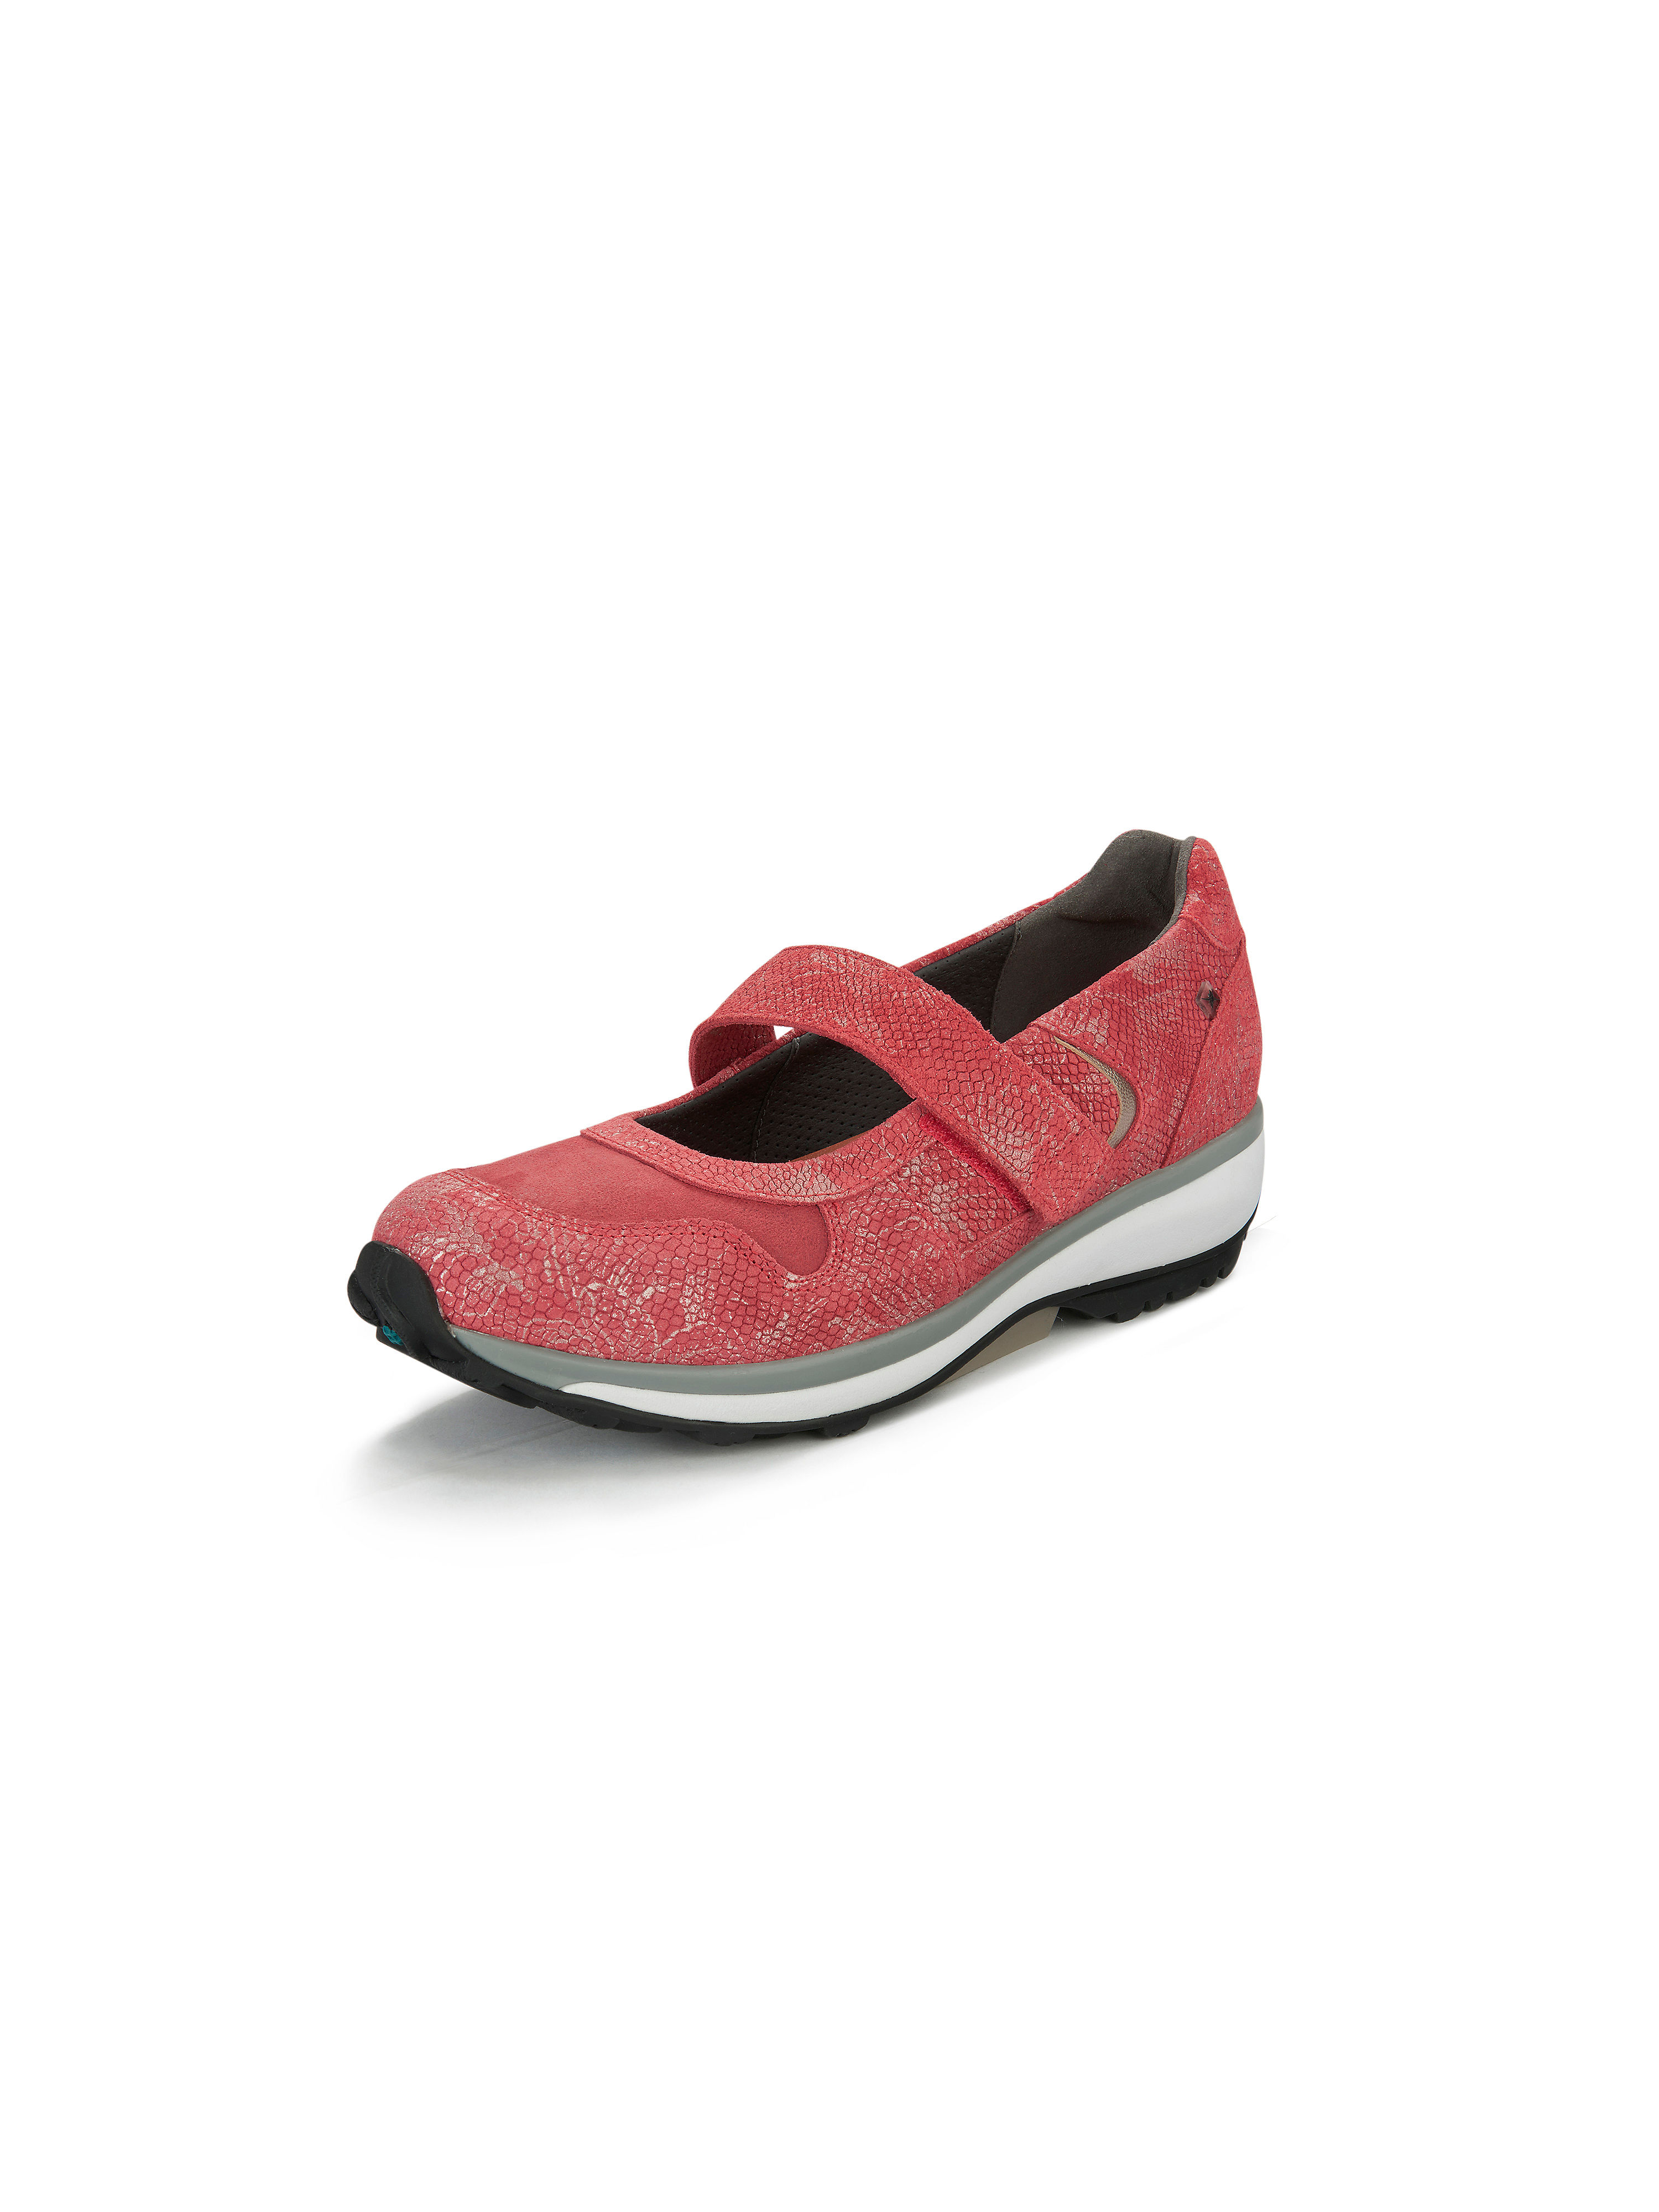 Les ballerines Xsensible rouge taille 40